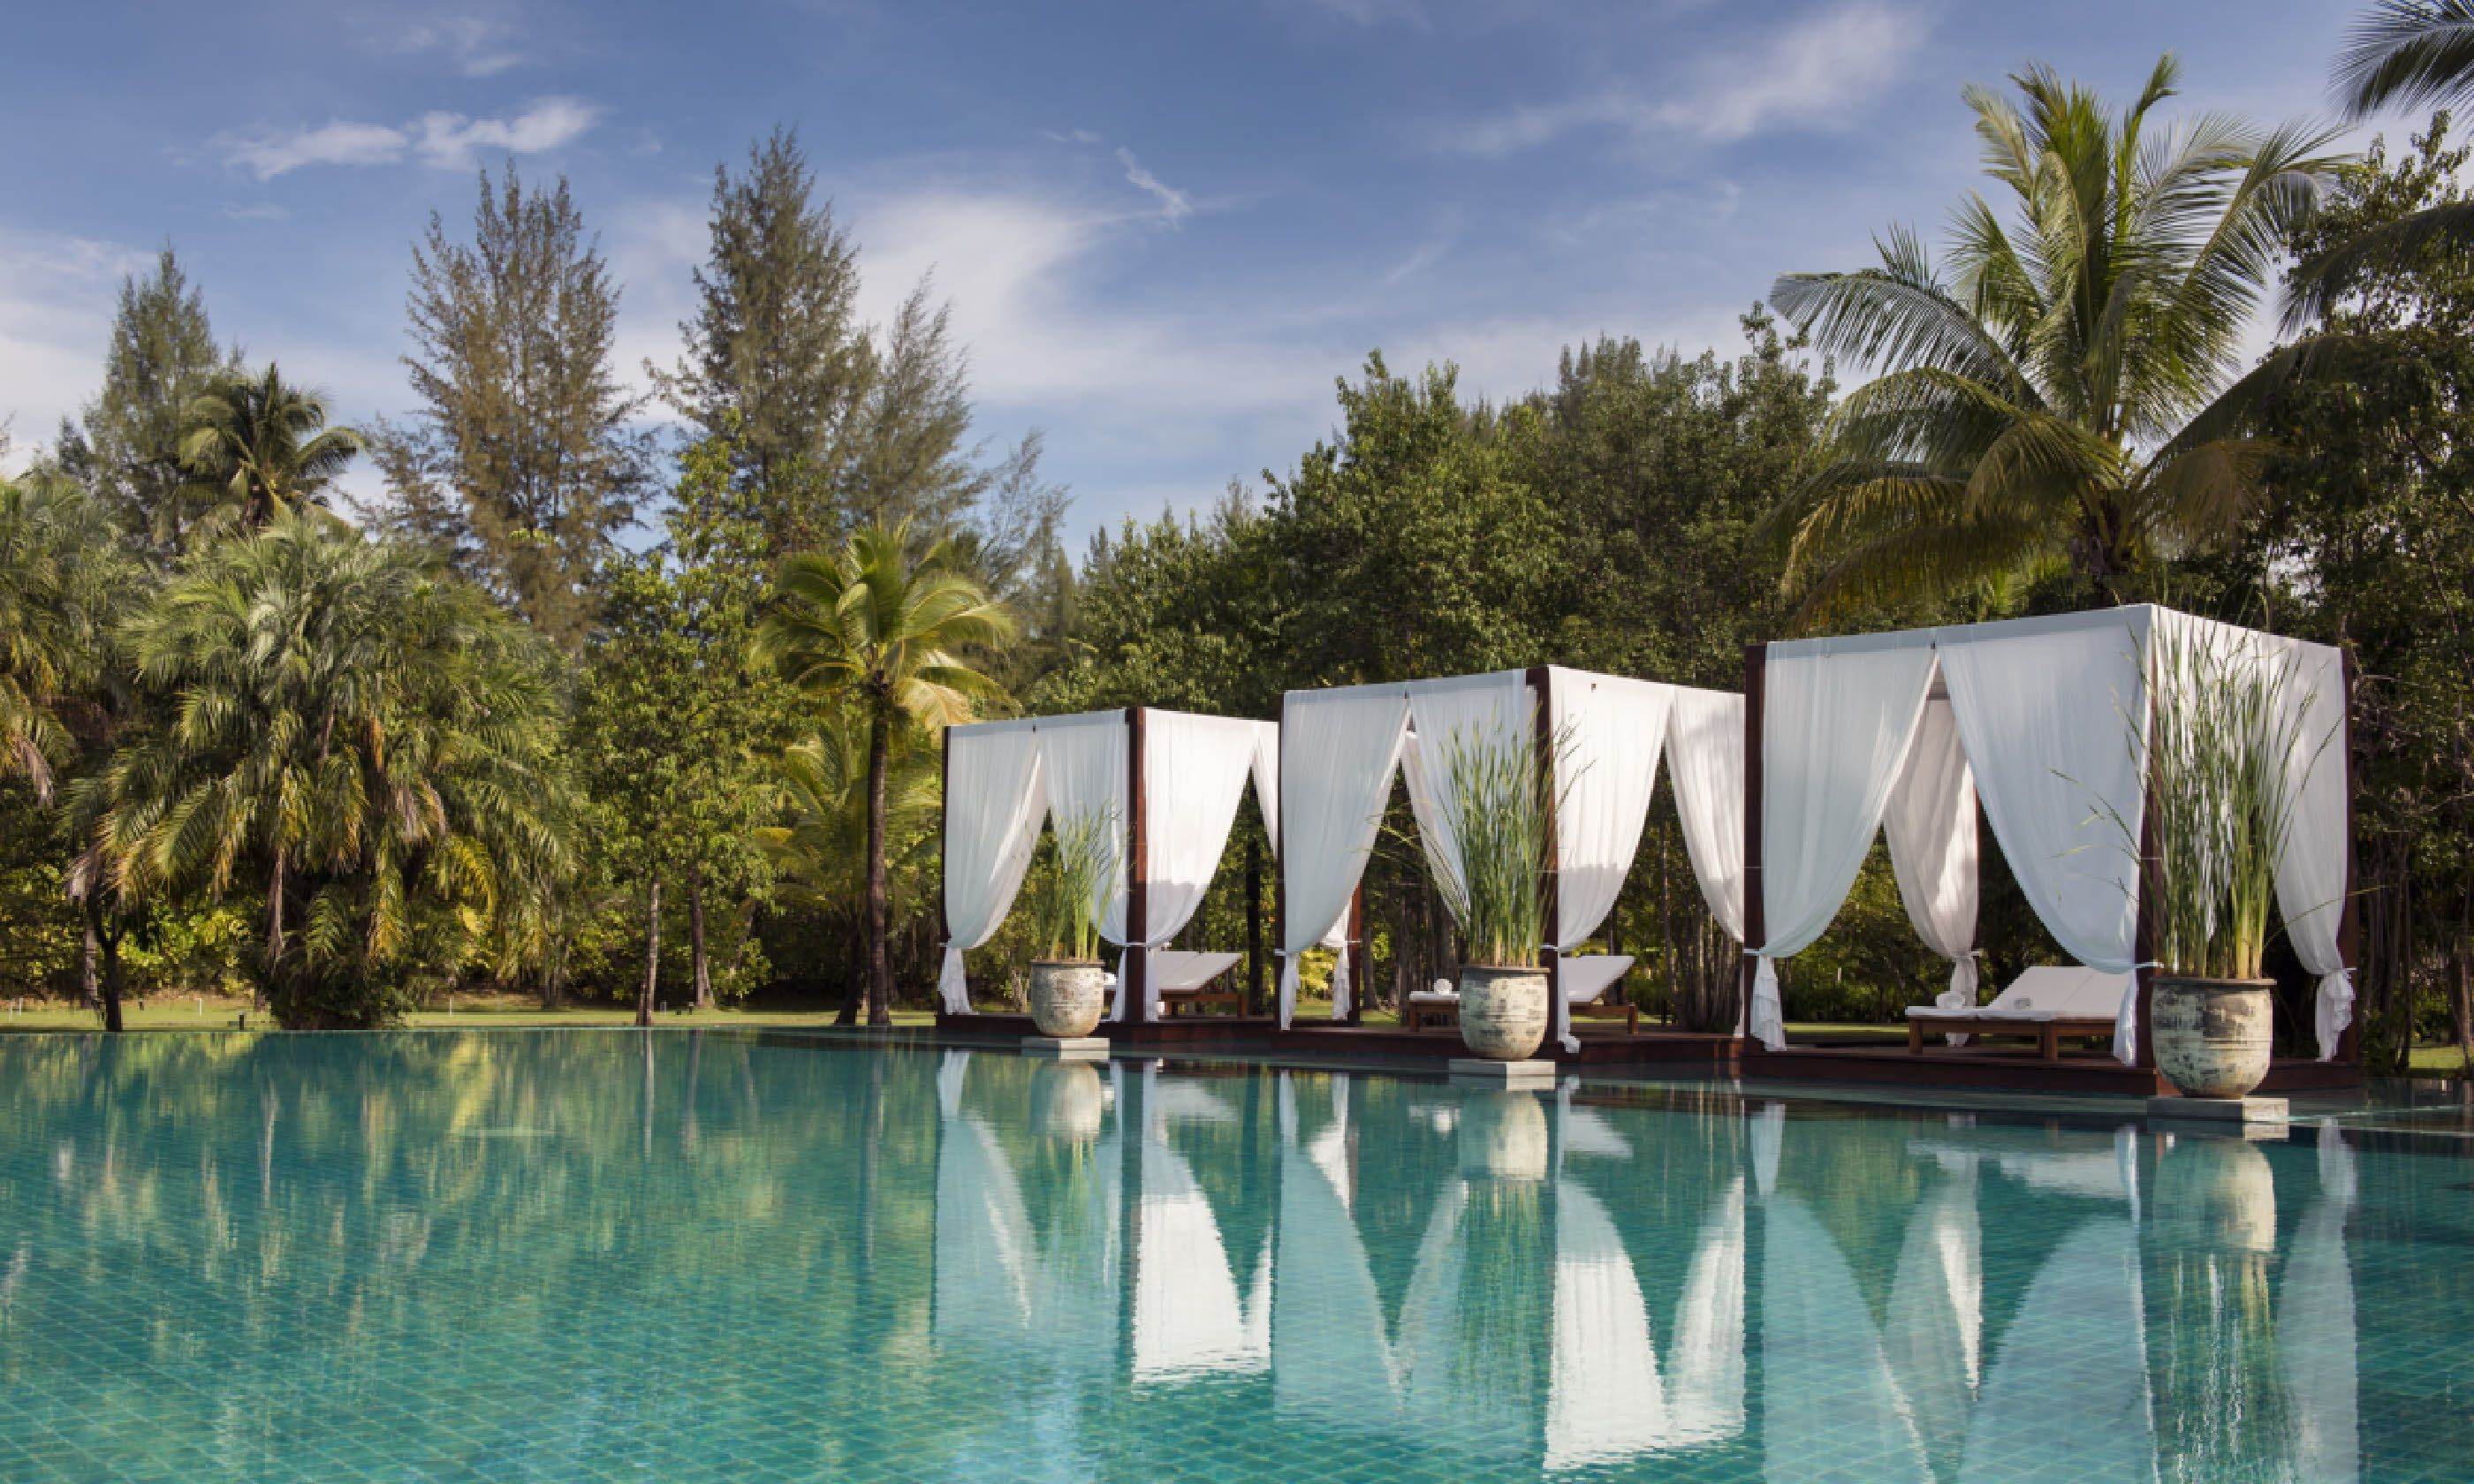 6 Thailand hotels that help the community